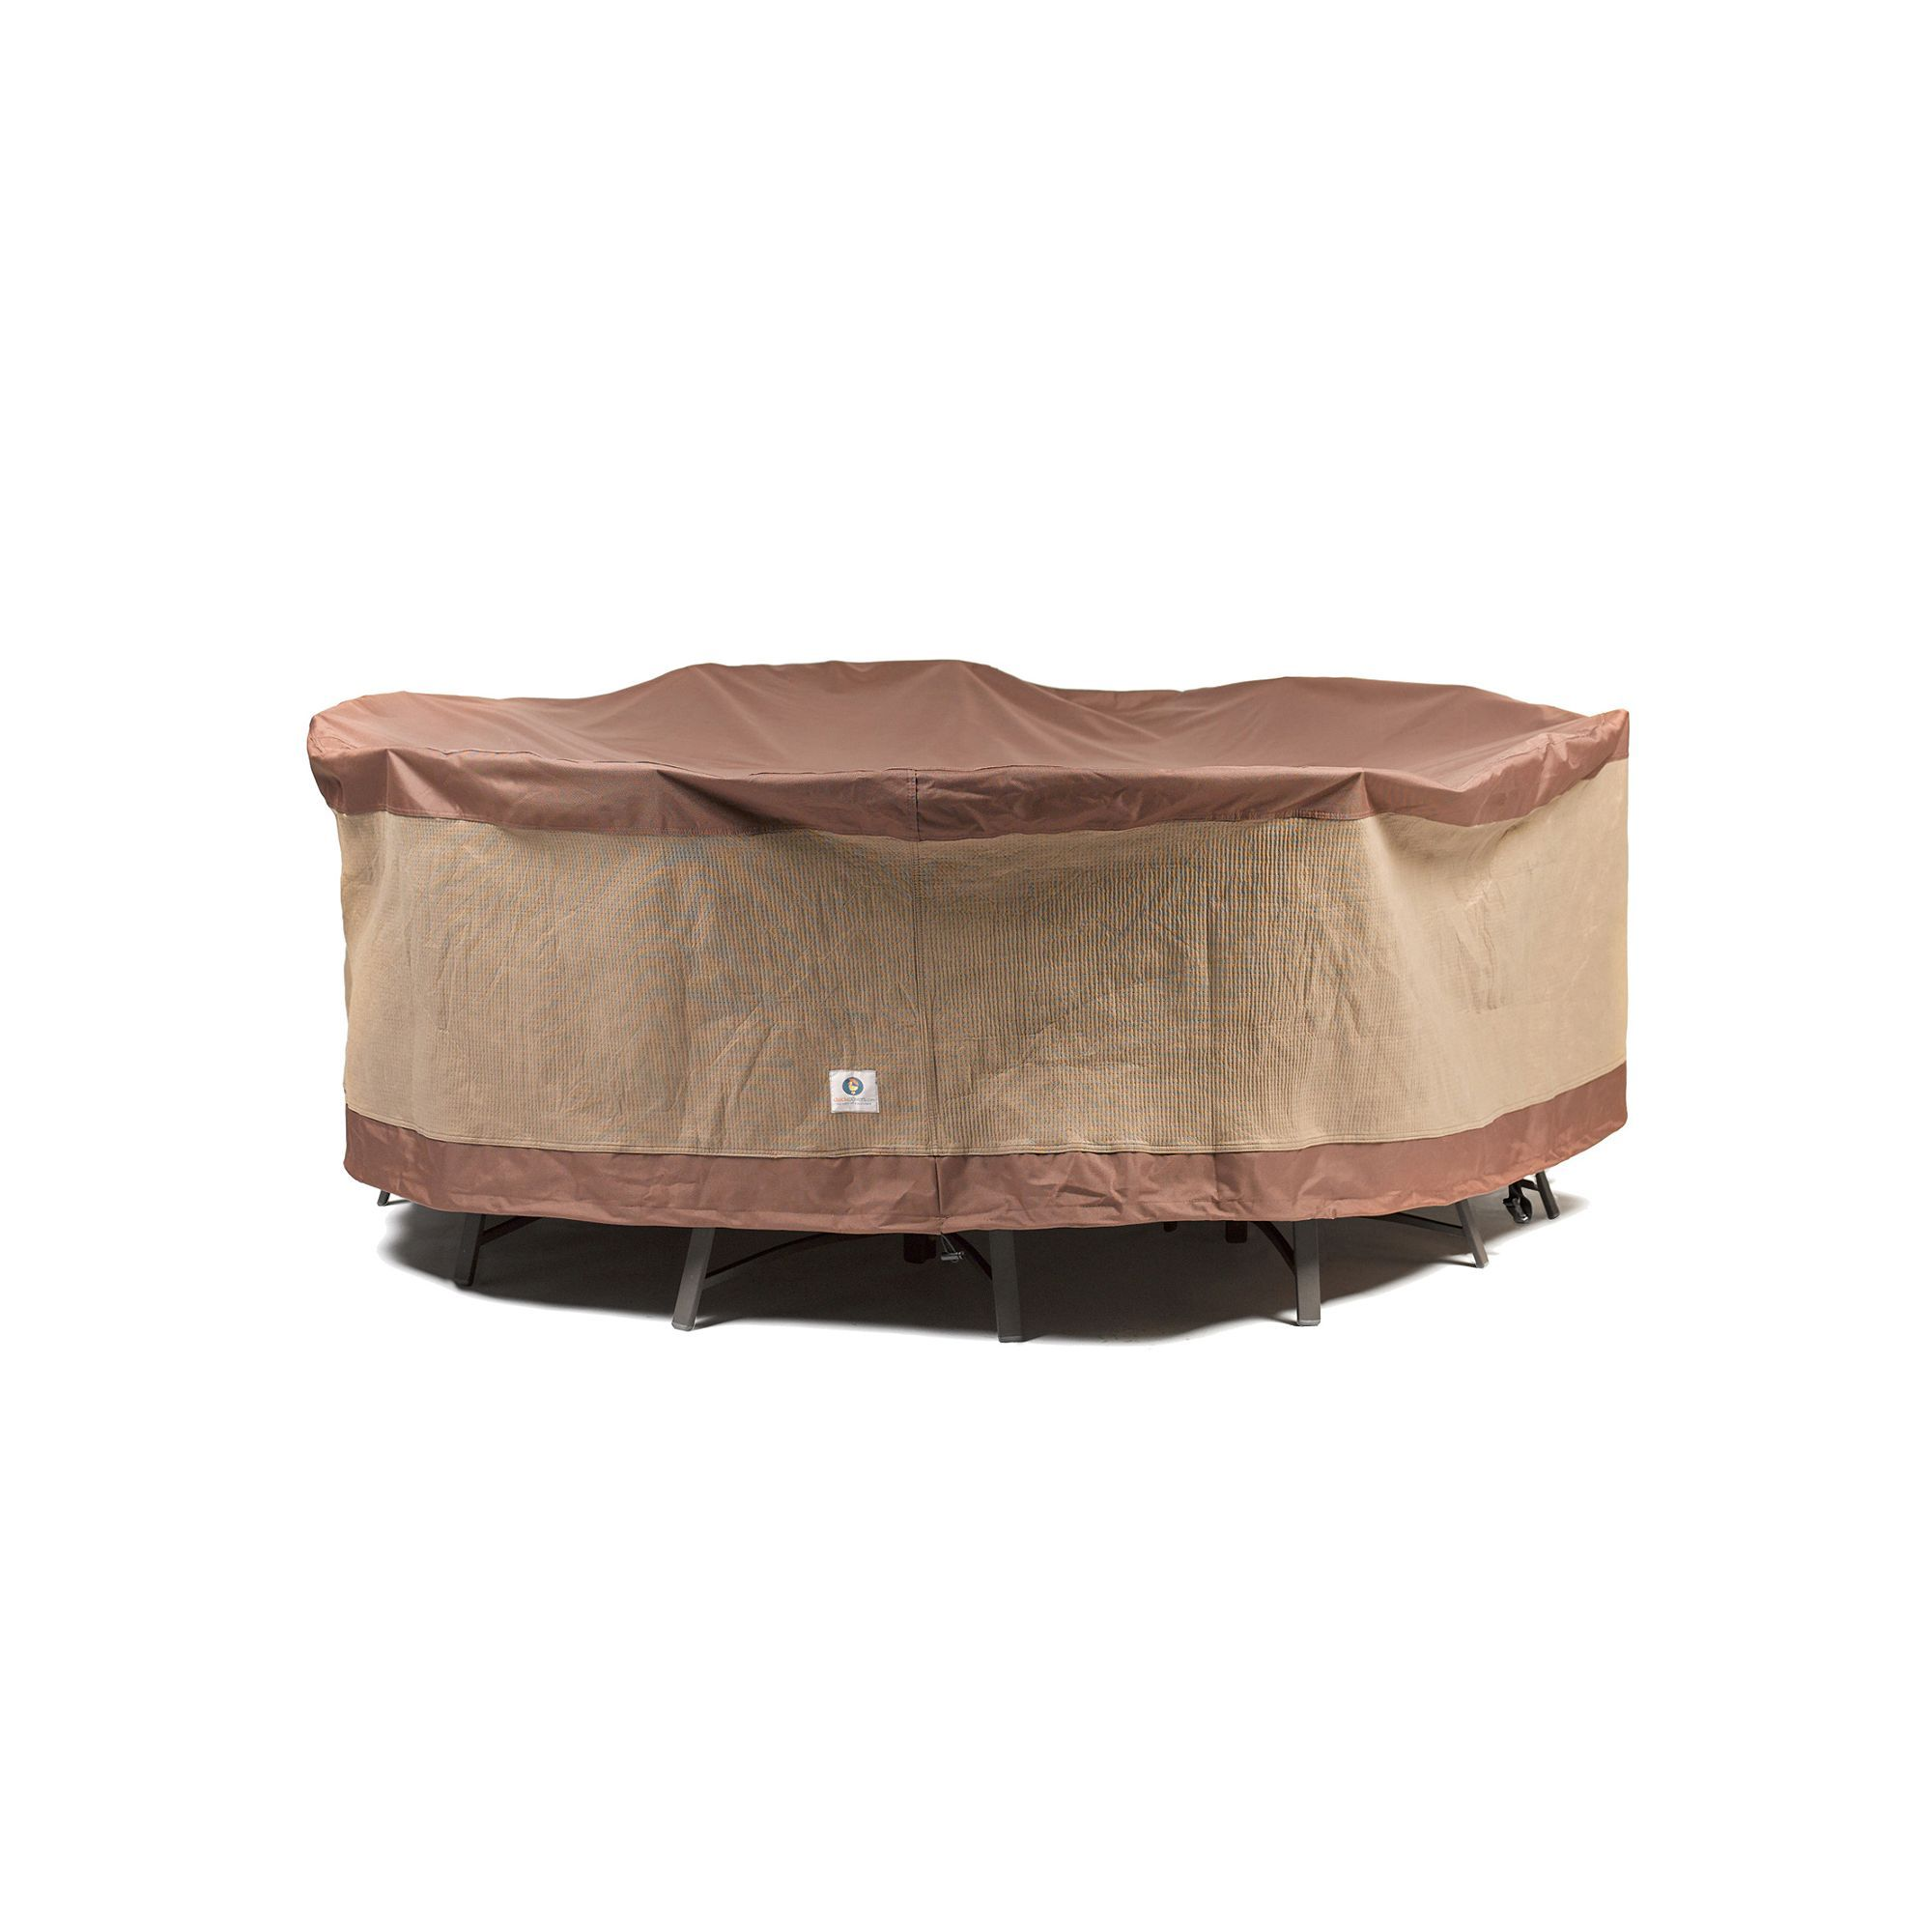 Outdoor Duck Covers 108 in Round Table and Chairs Cover Brown